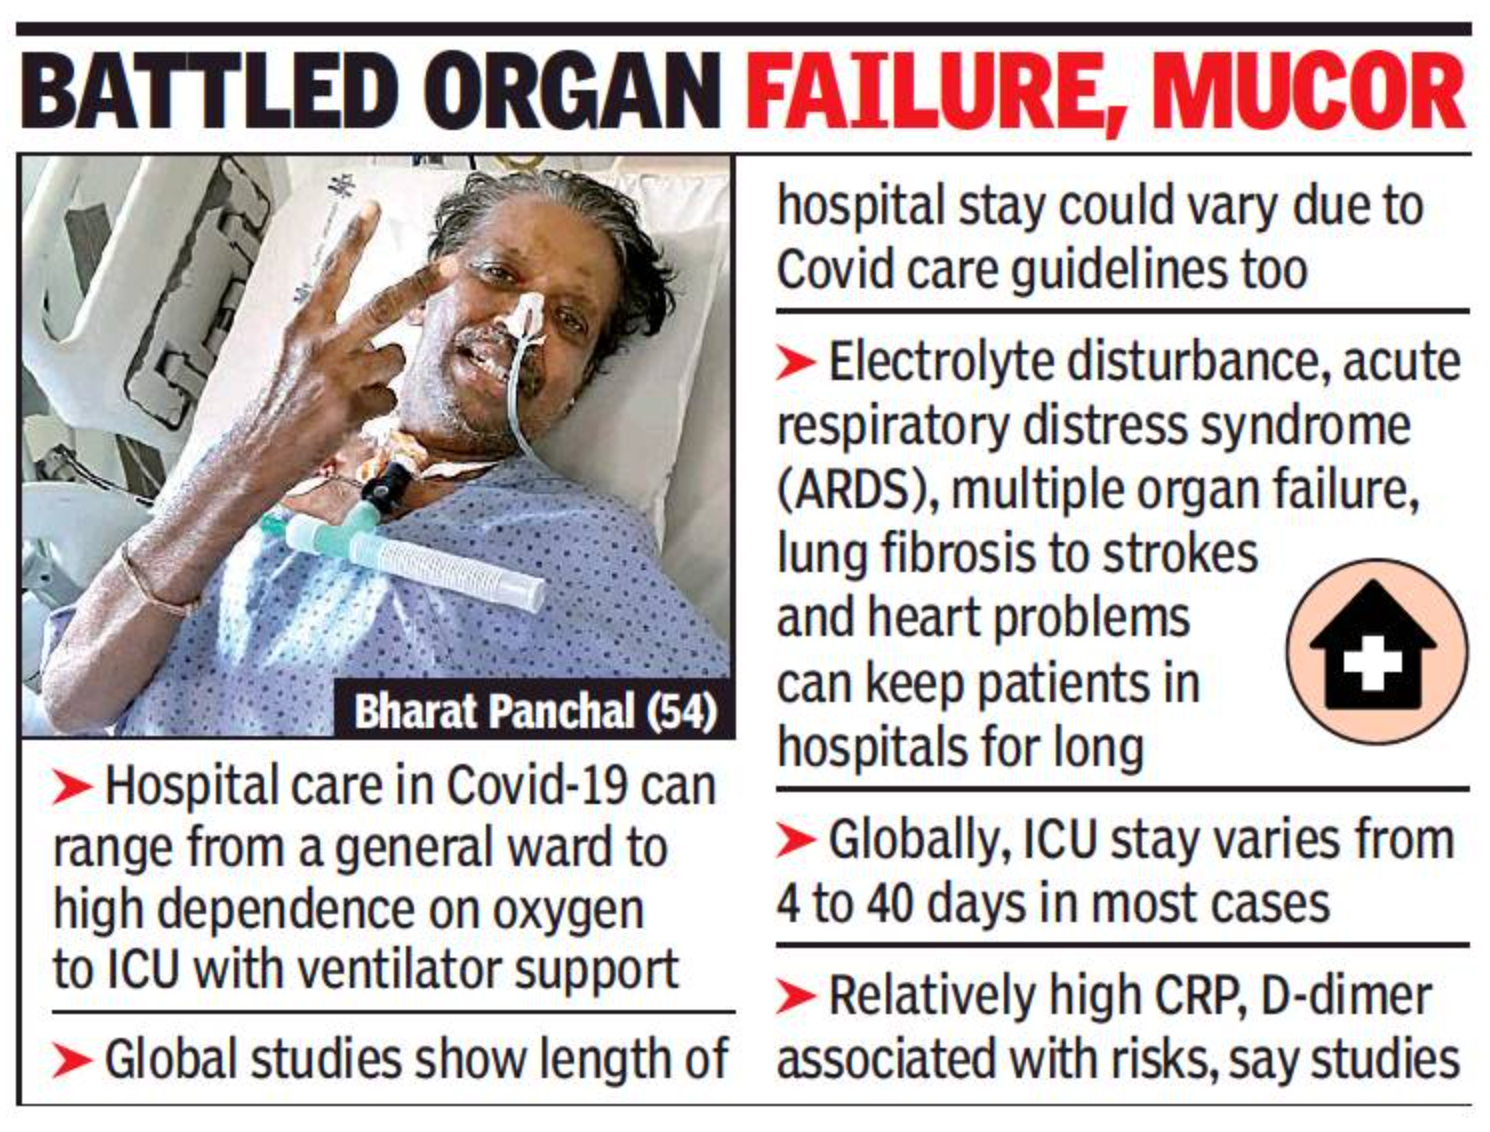 Mumbai man goes home after 85-day battle against Covid